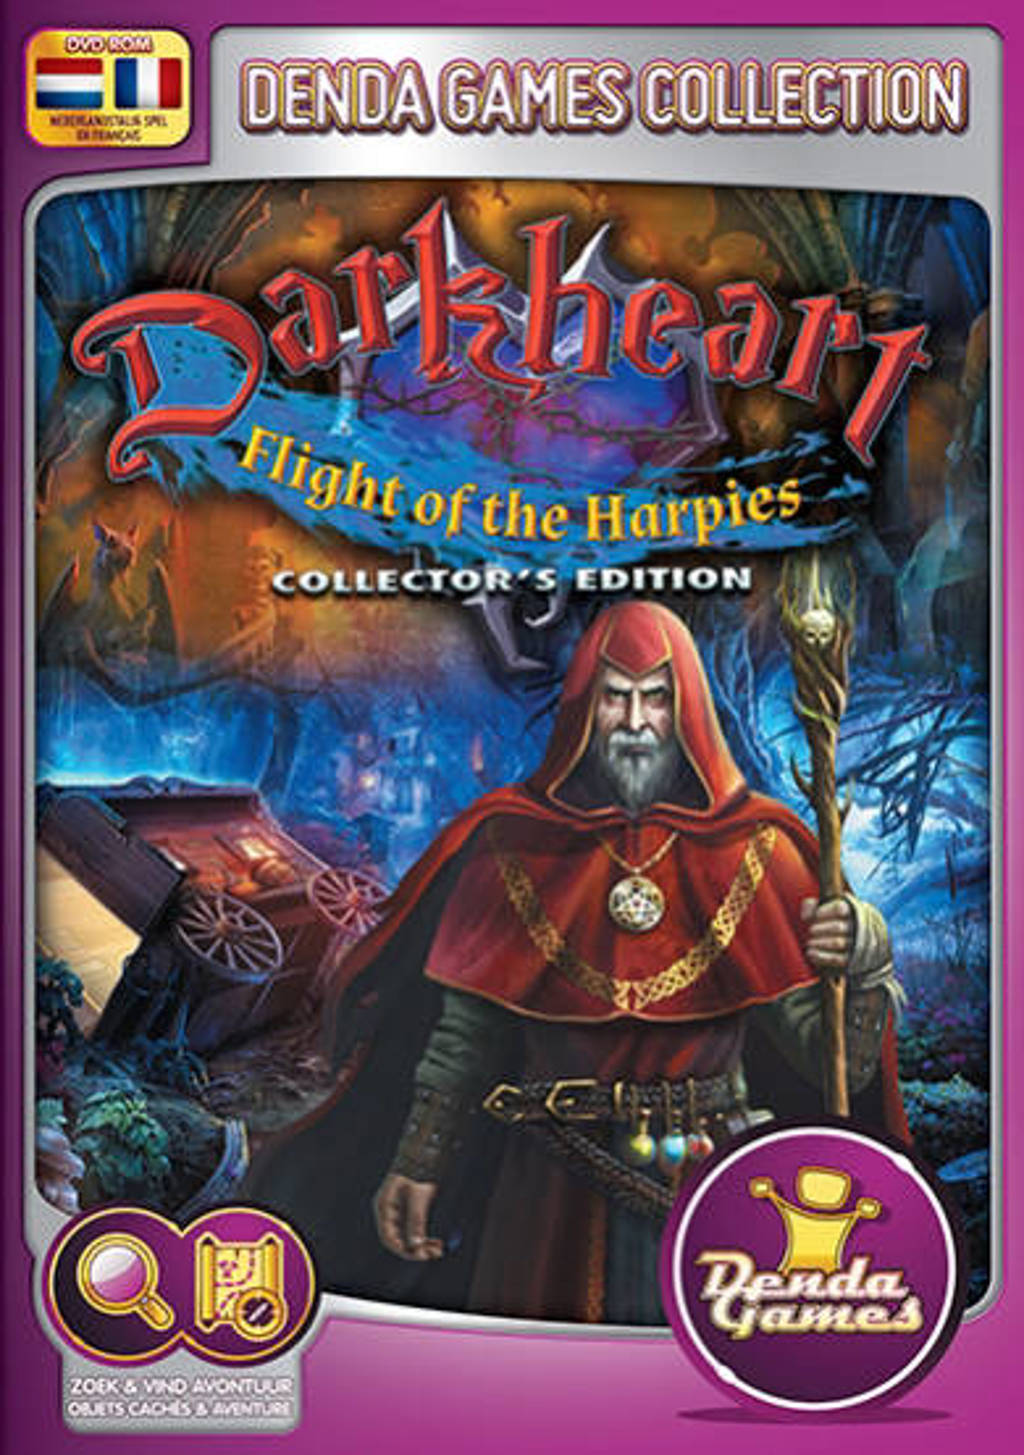 Darkheart - Flight of the harpies (Collectors edition) (PC)